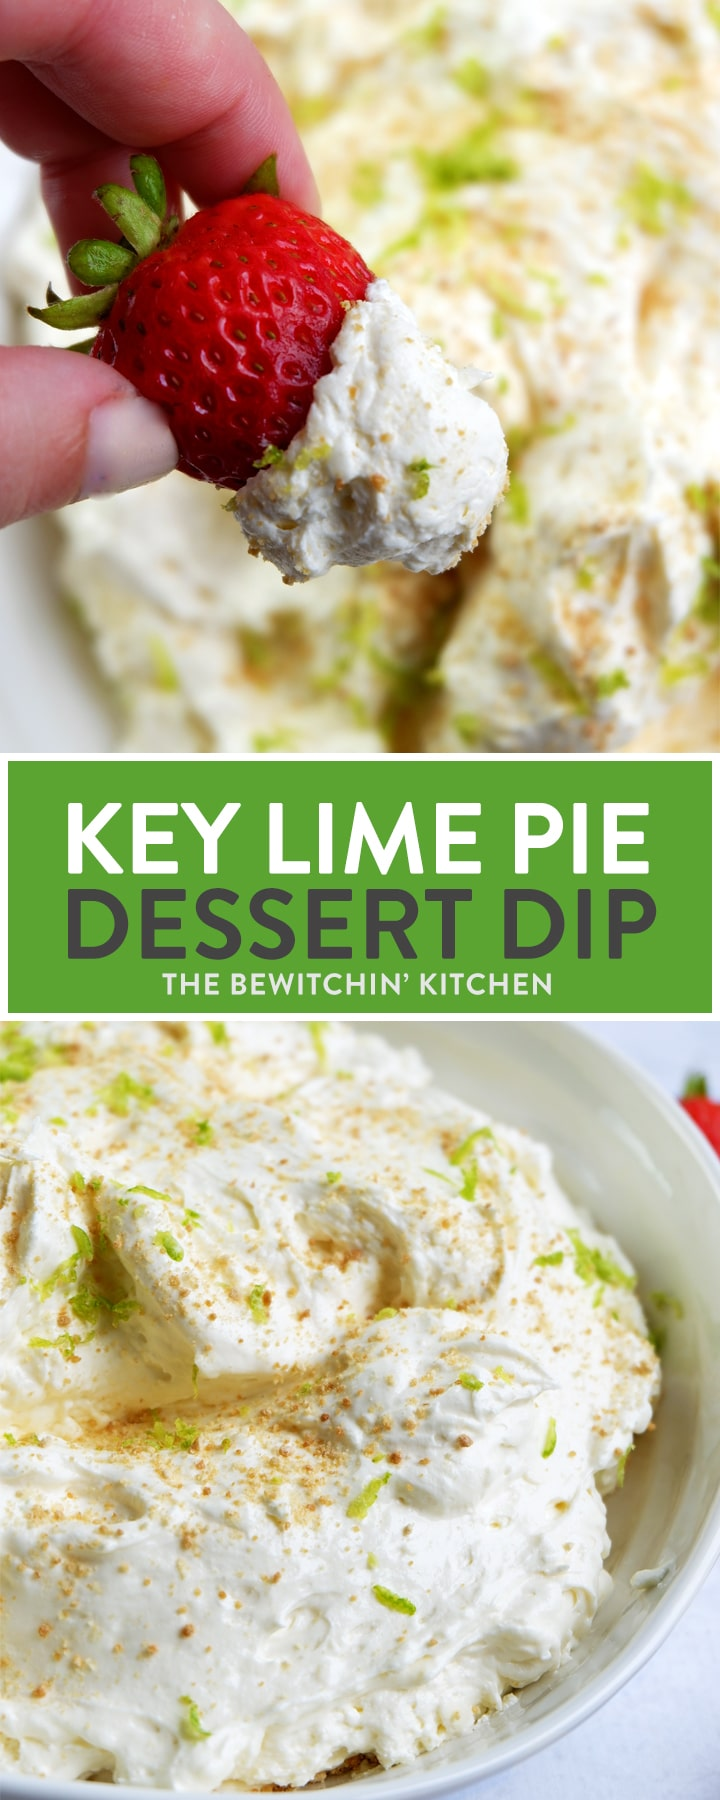 Key Lime Pie Dip - this dessert dip is amazing. It blends a creamy cheesecake dip with key lime pie for a fruit dip recipe that your guests will love.